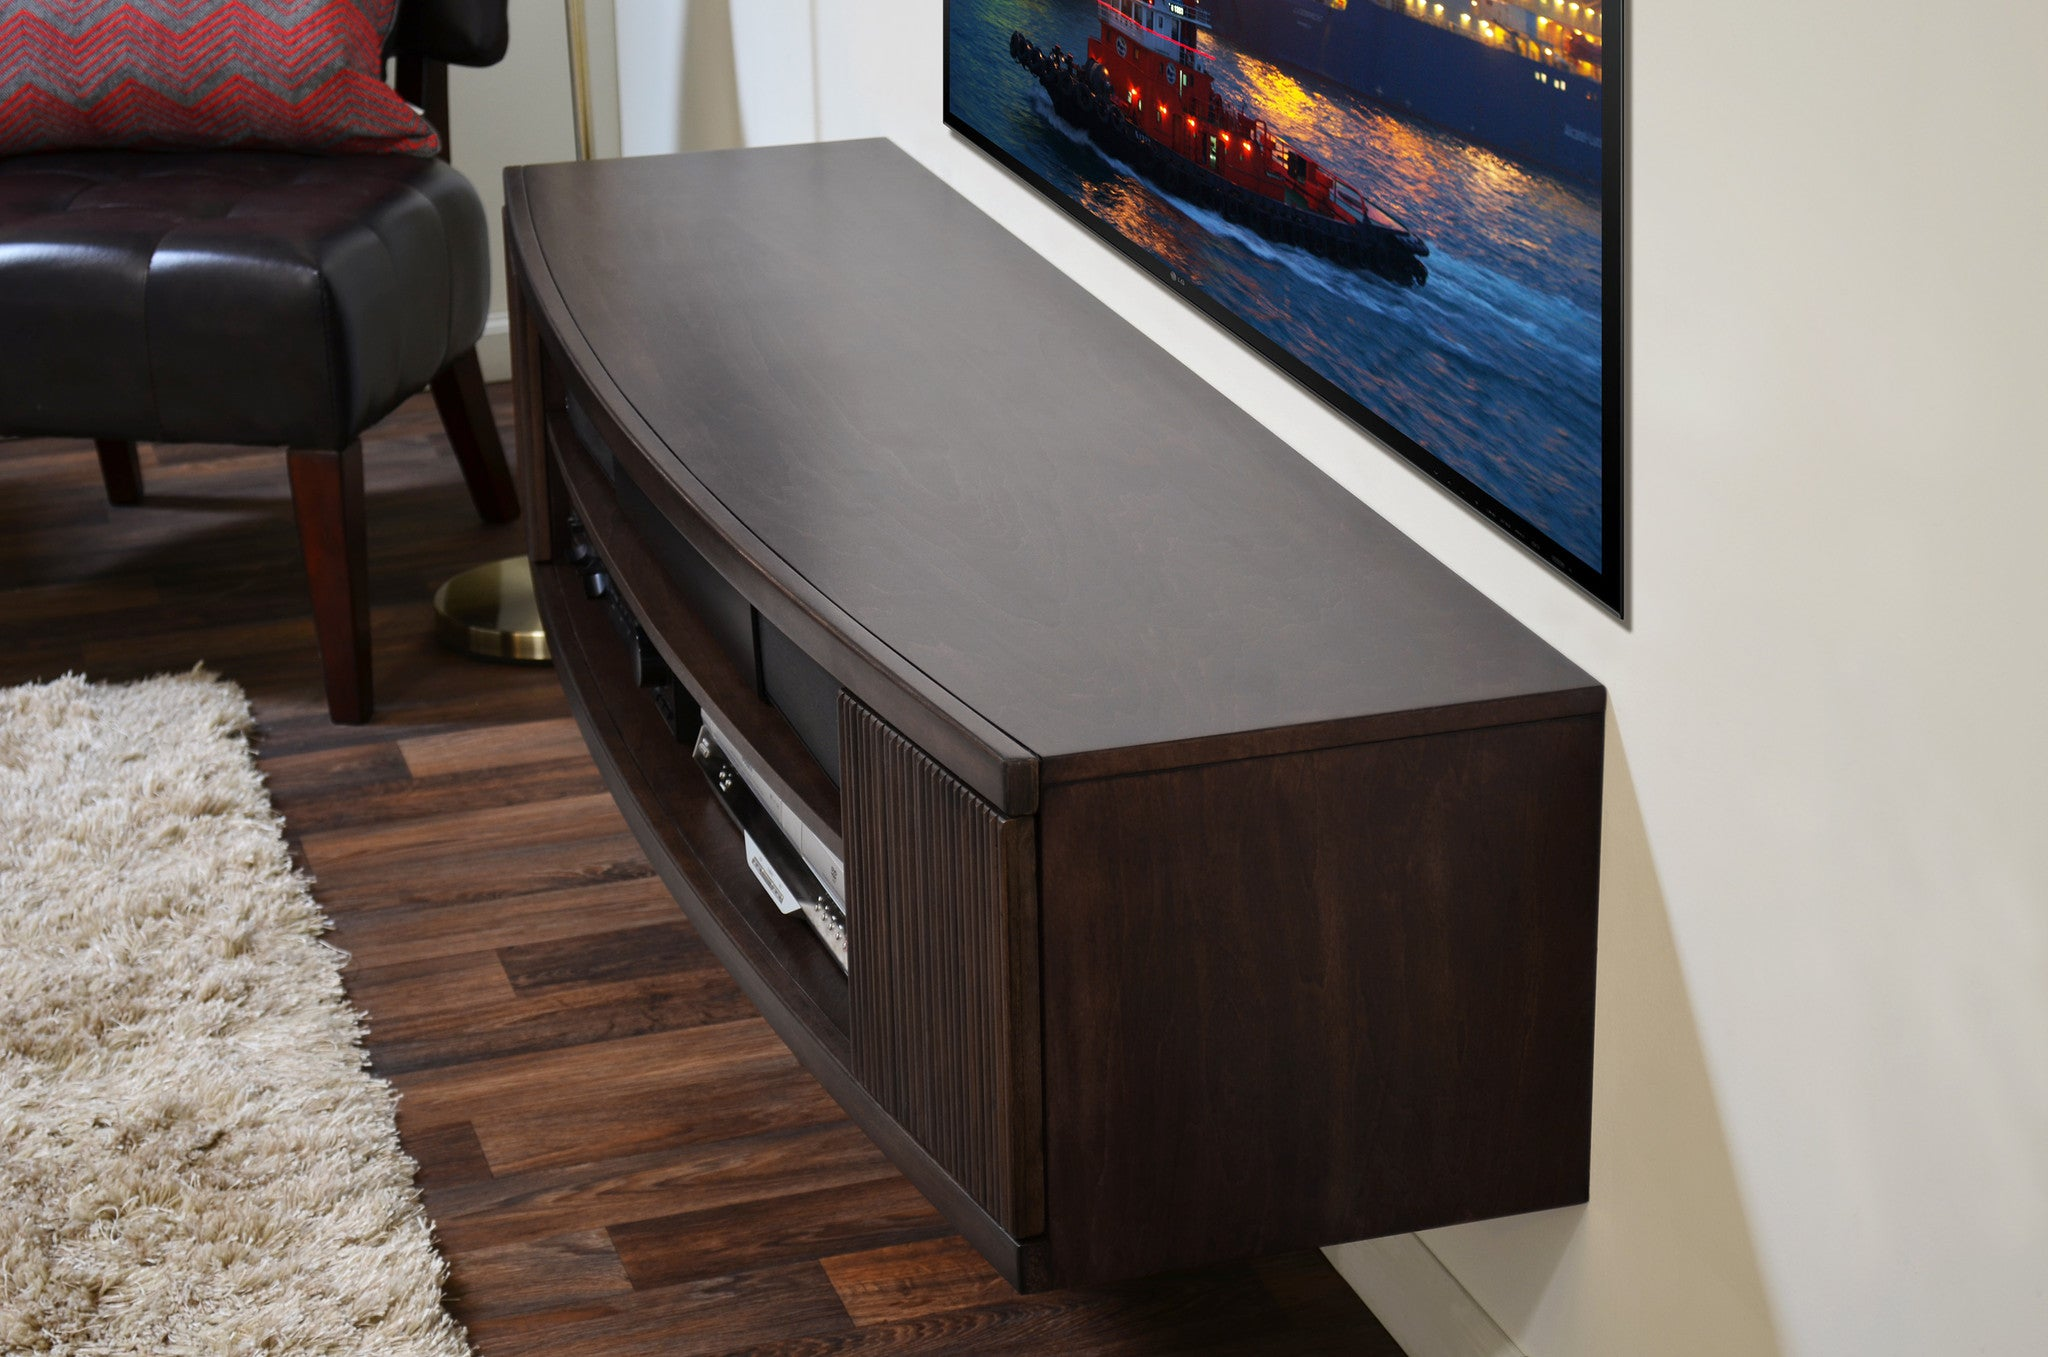 Curved Wall Mount TV Stand - The Curve - Espresso - OB 30% OFF!